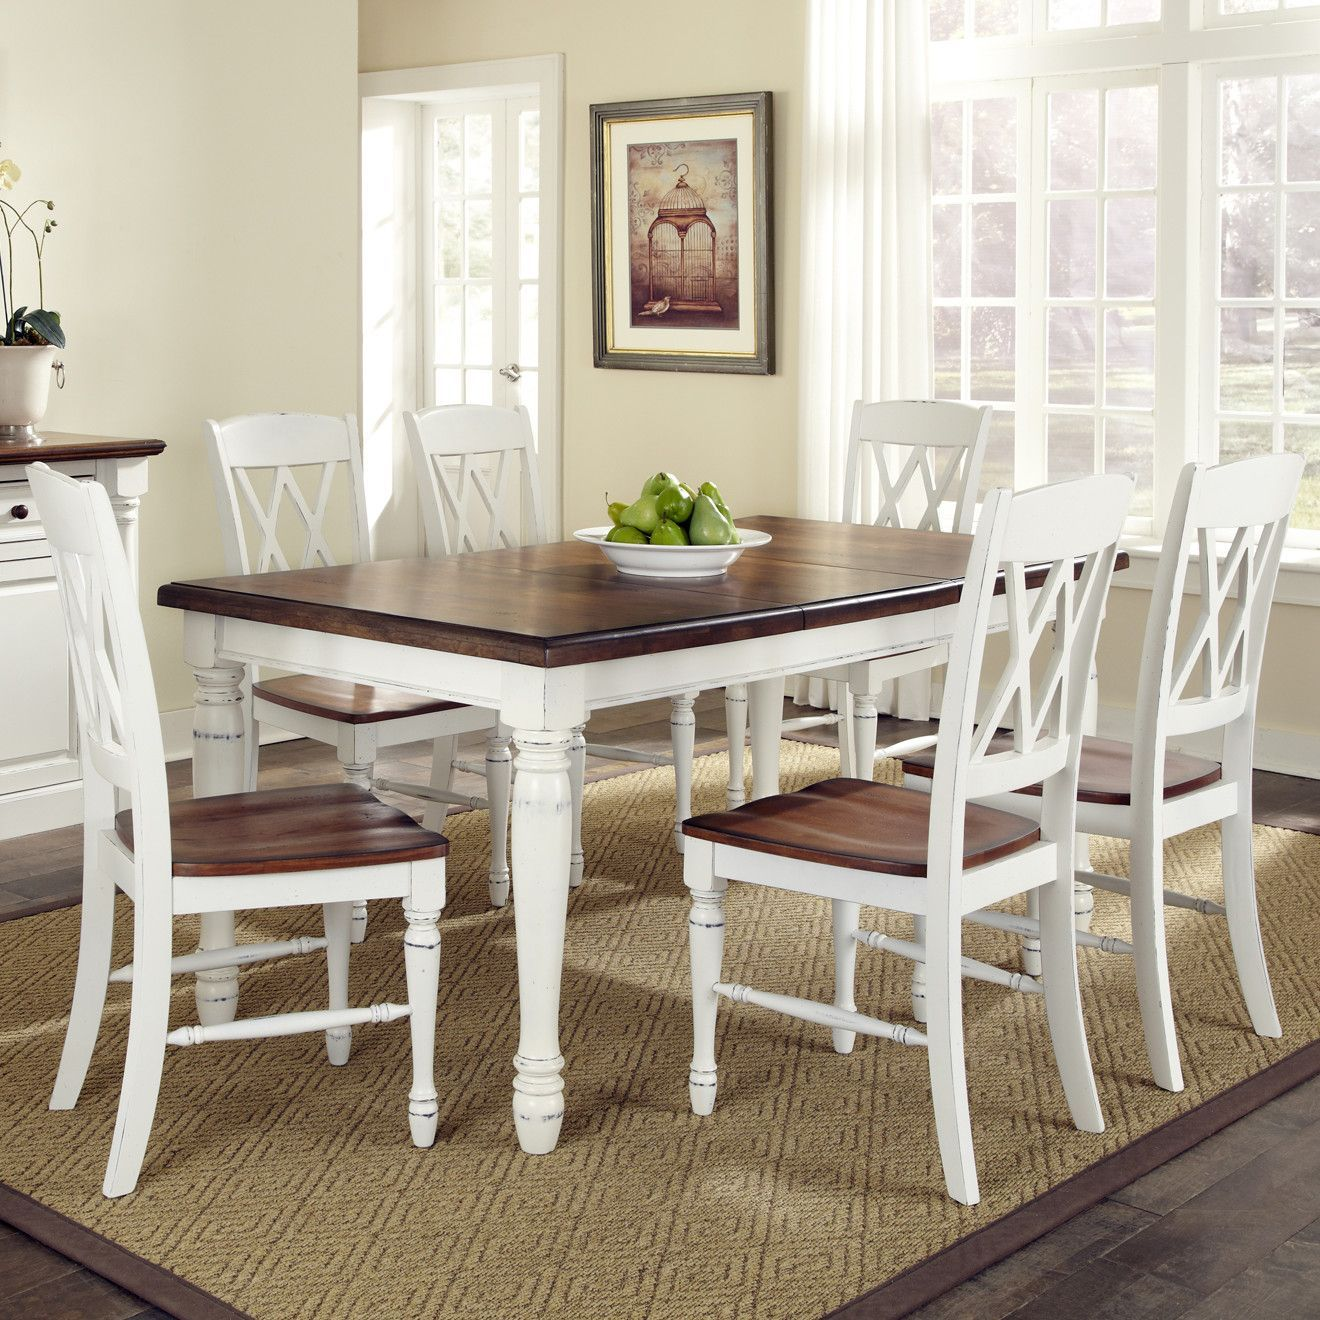 12 Piece Dining Room Set: Monarch 7 Piece Dining Set In White